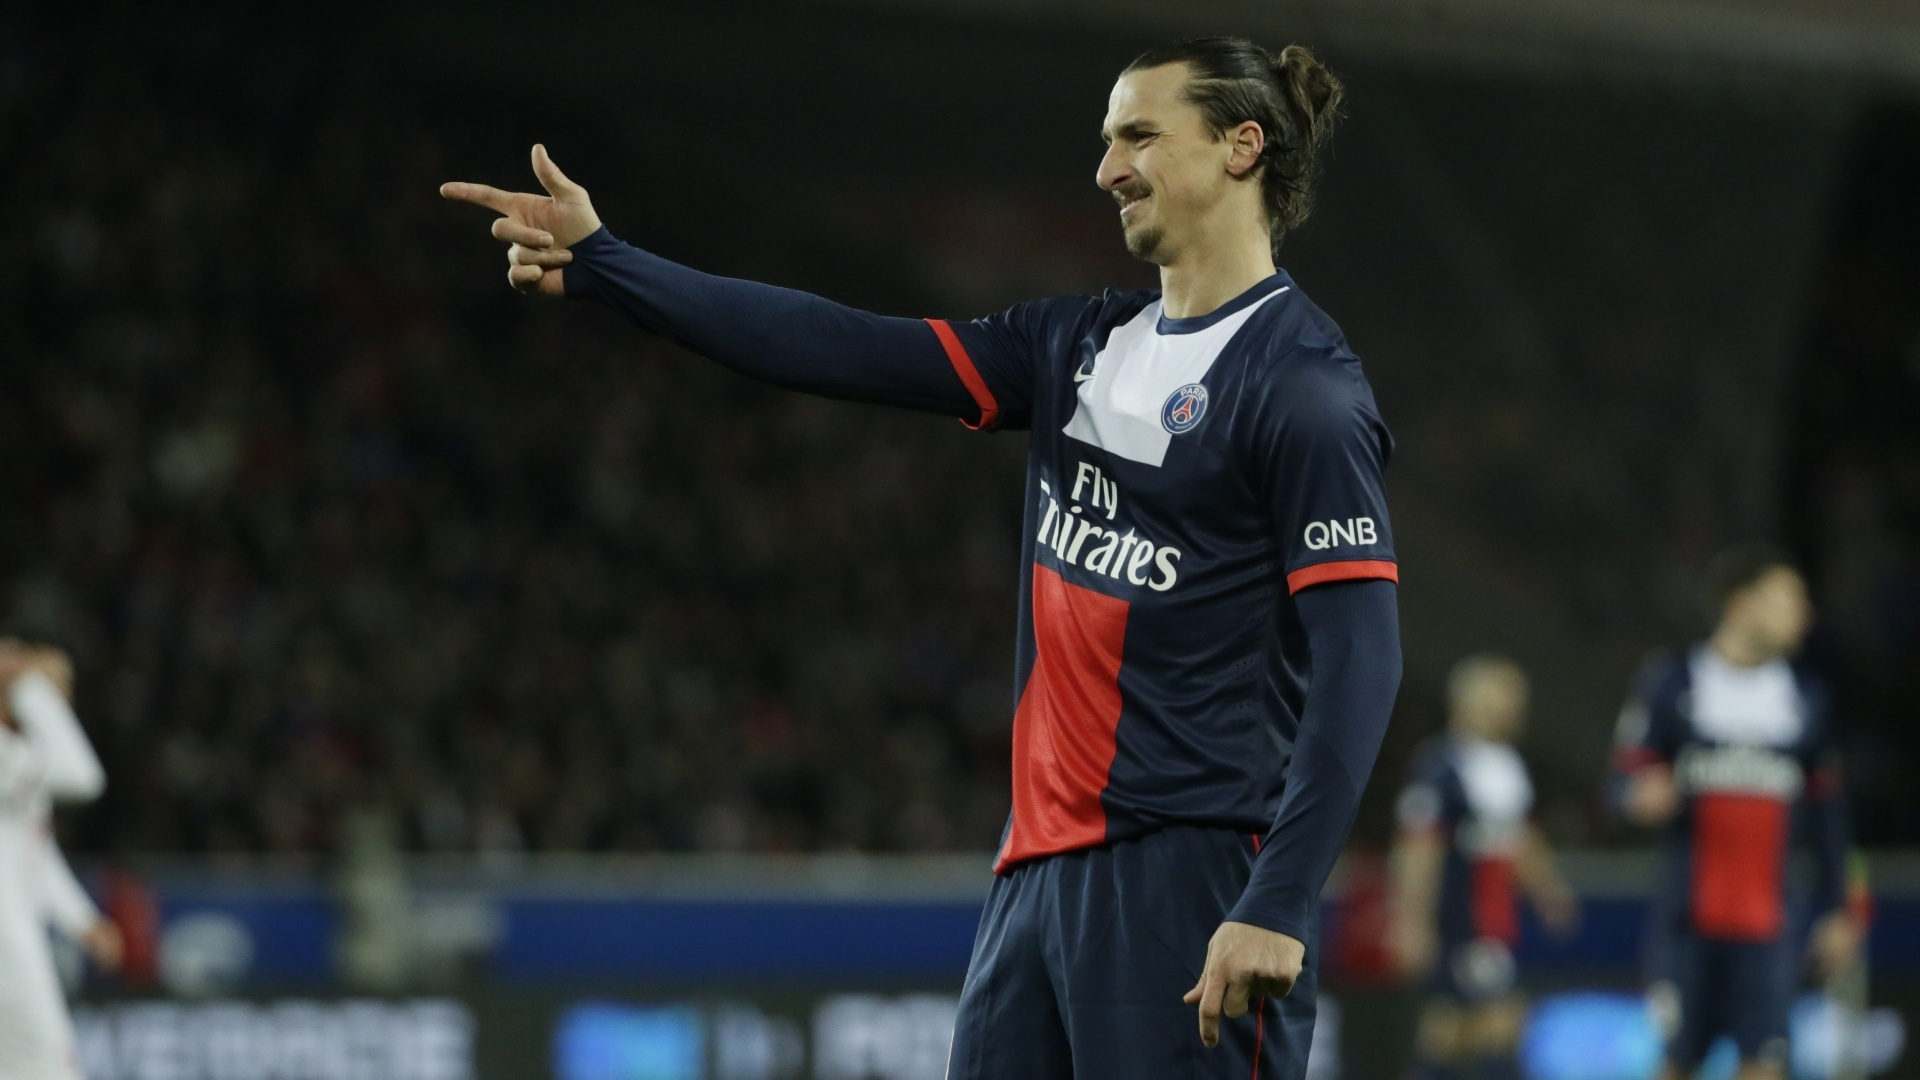 IBRAHIMOVIC-TRINITYNEWS.IT